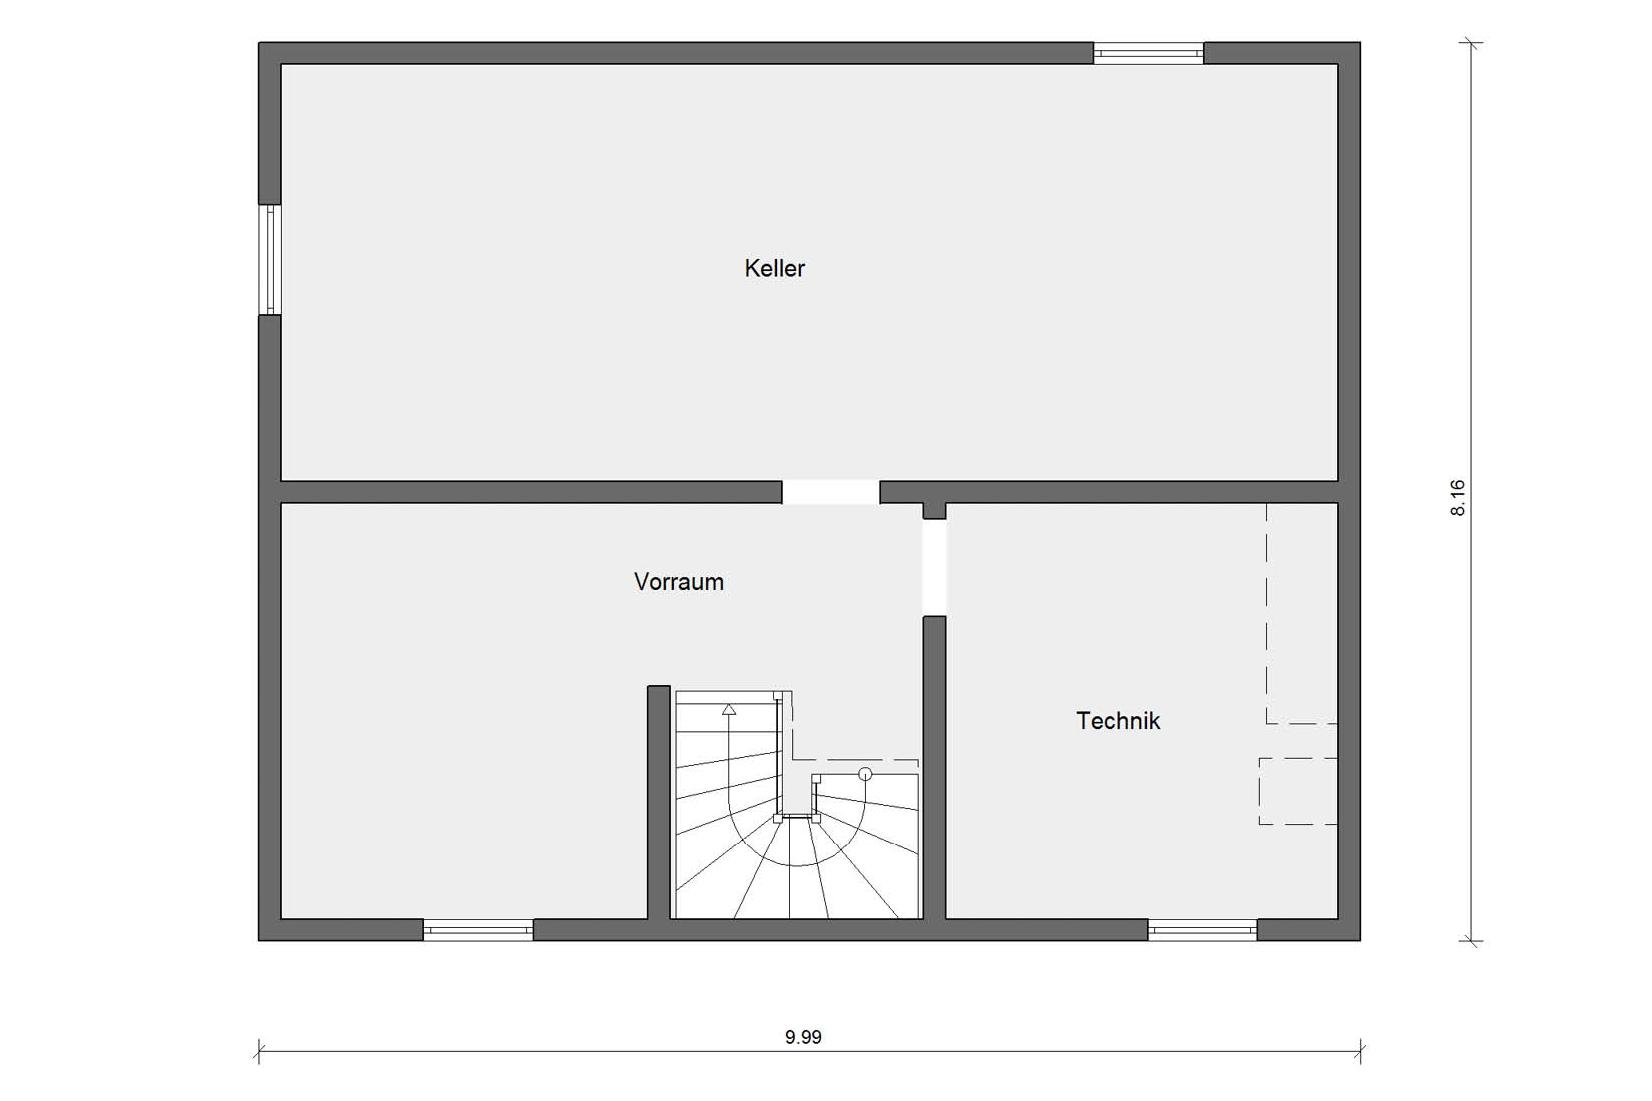 floor plan basement E 15-143.15 House with flat roof dormer